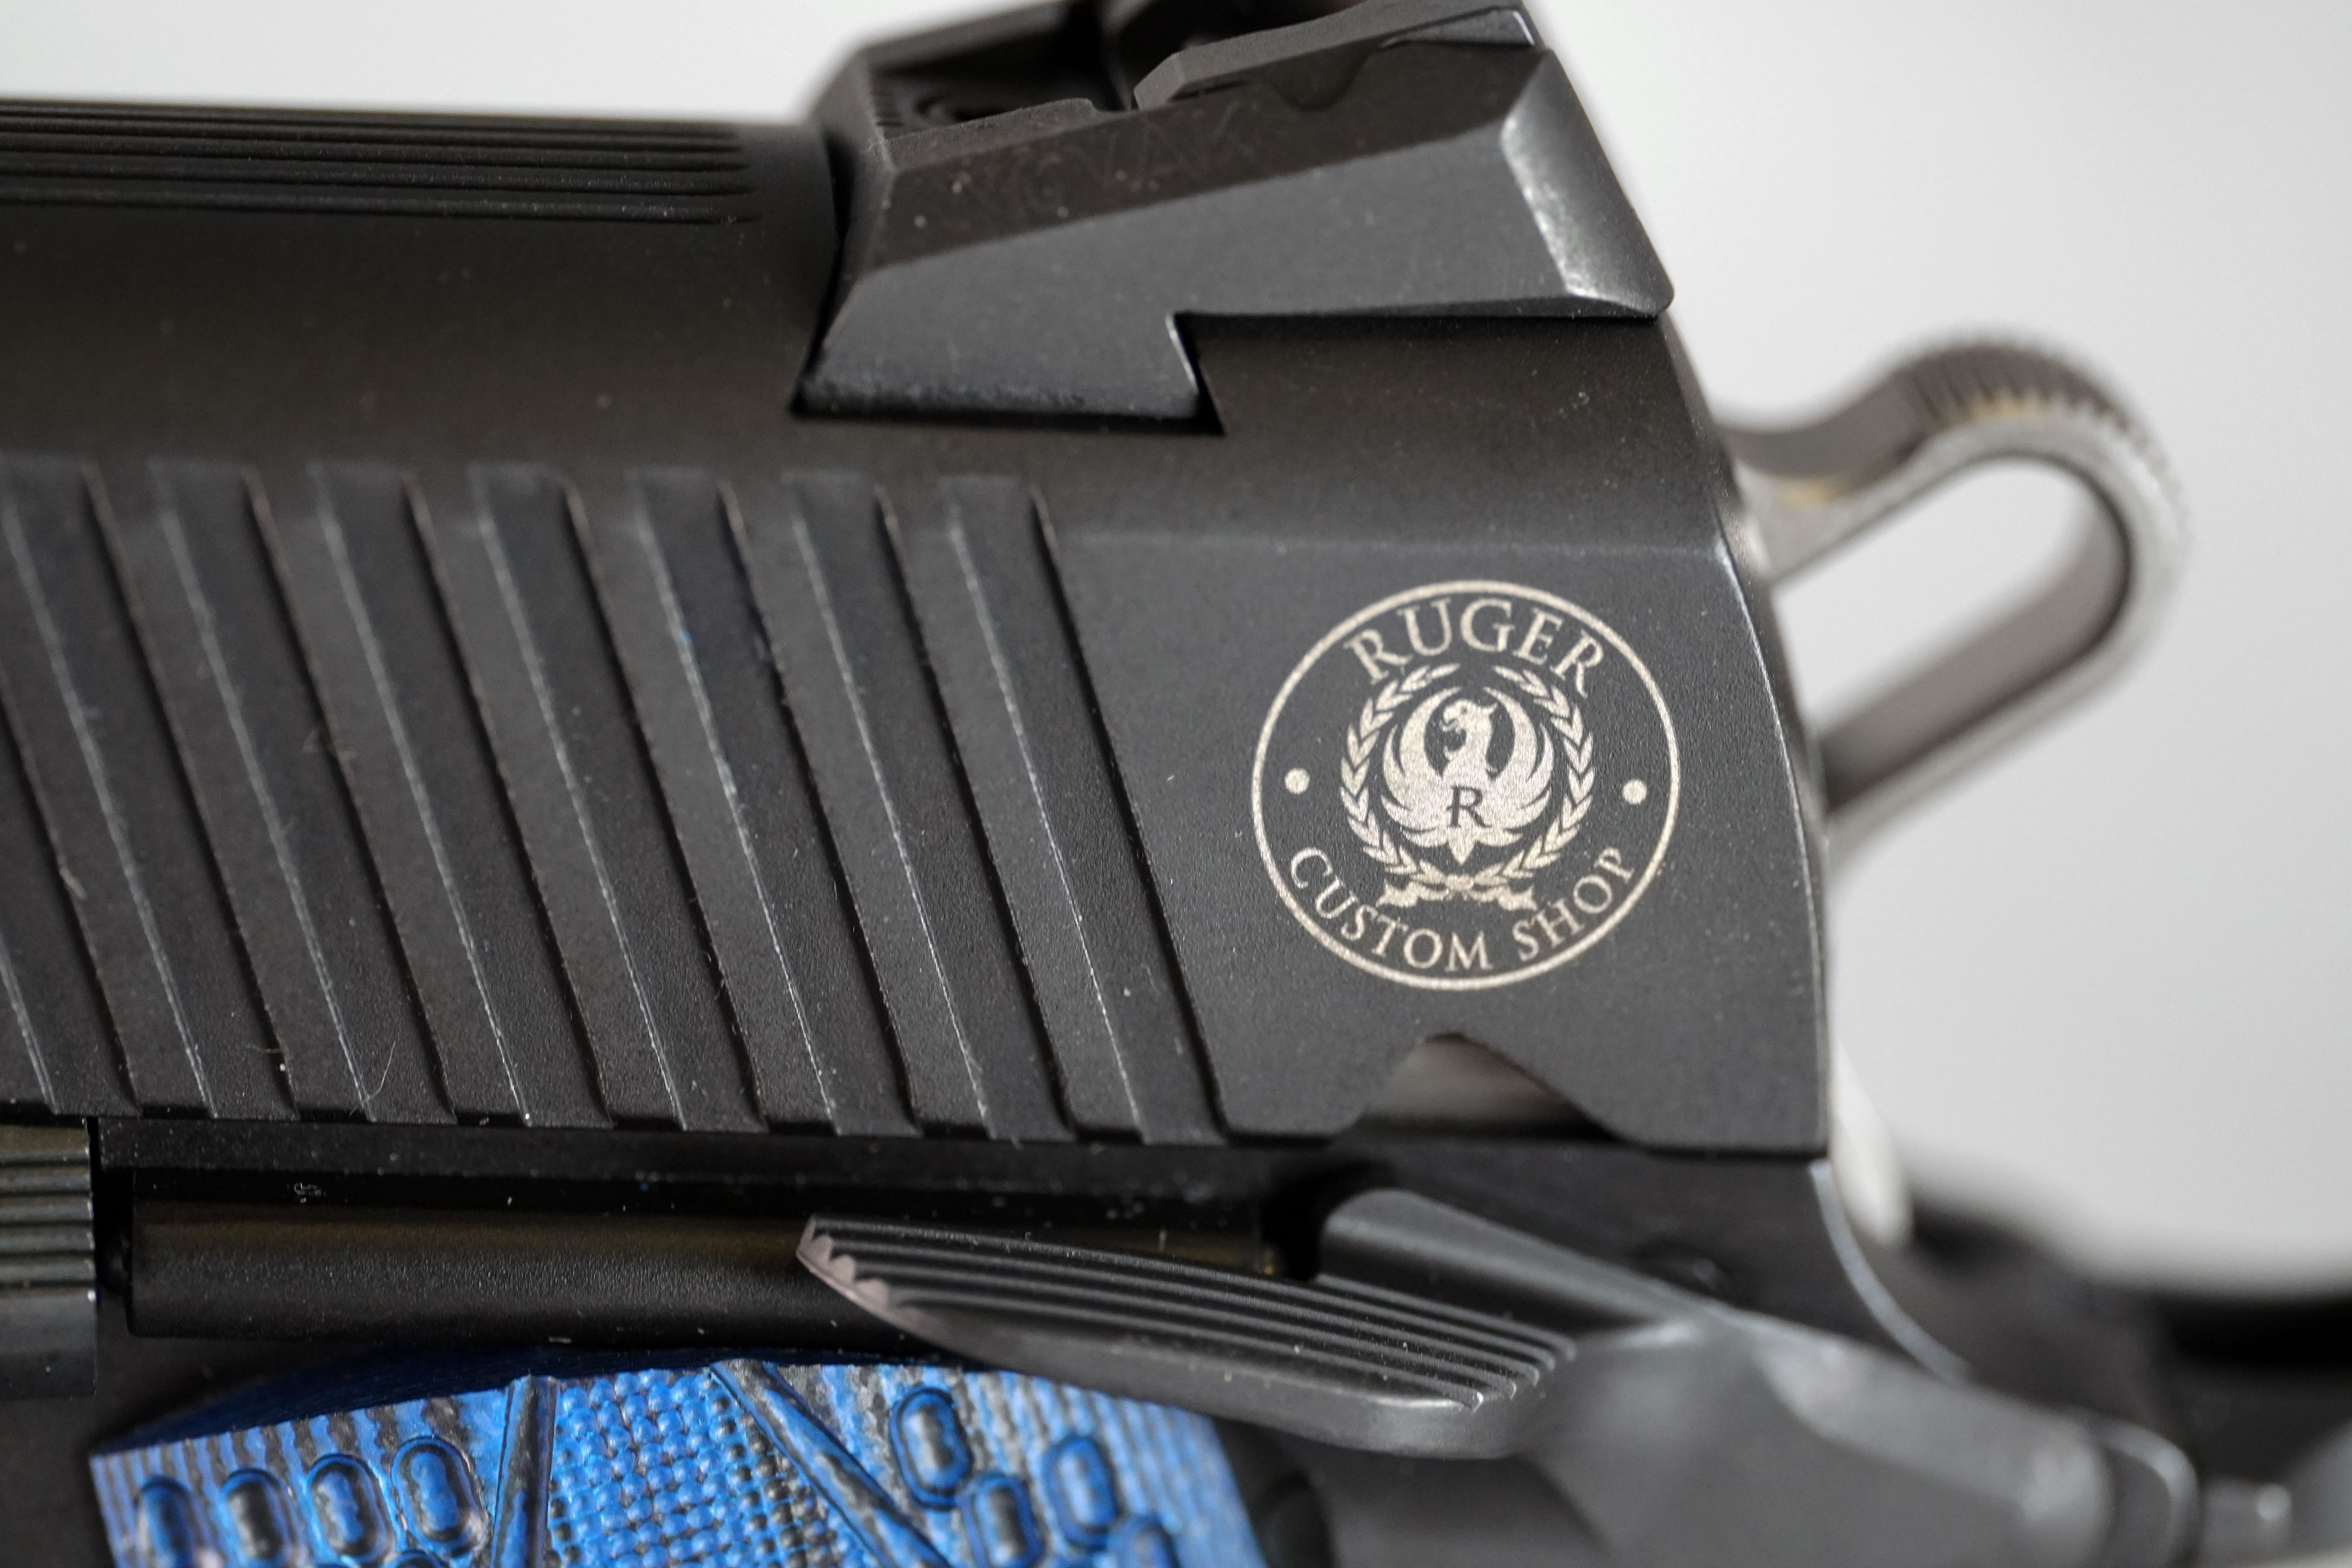 GT25 from Ruger Custom Shop